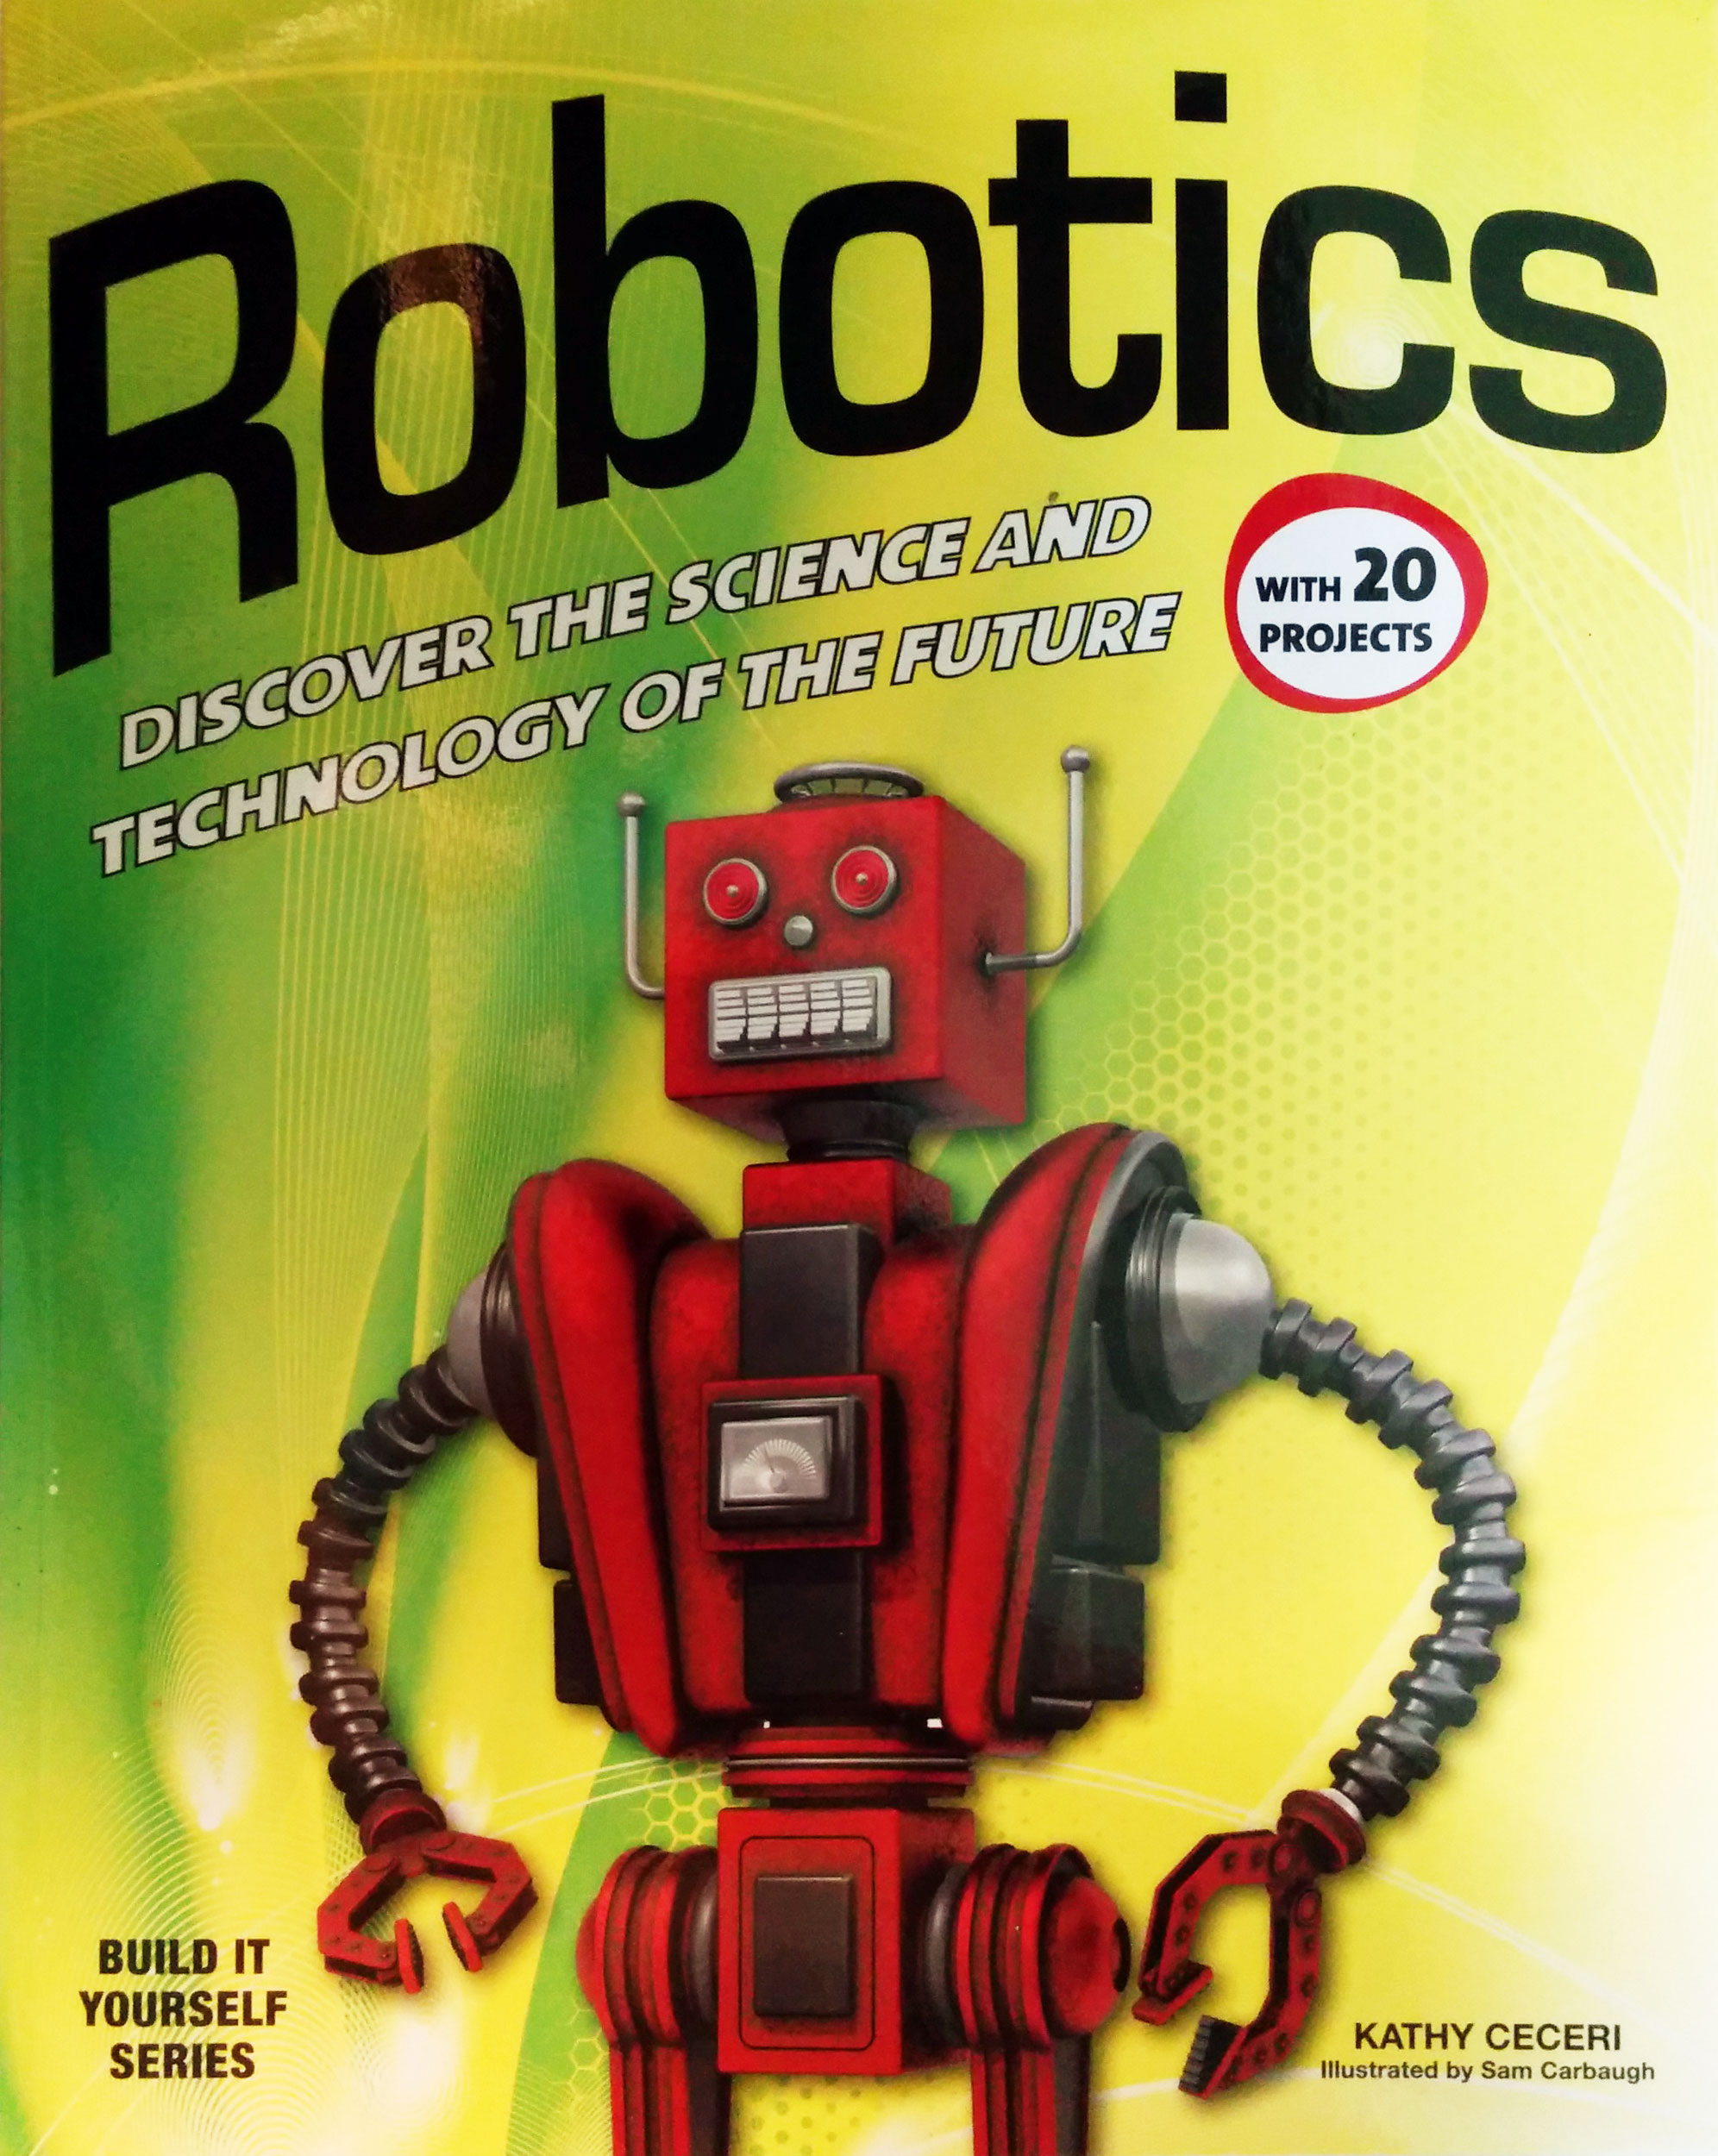 Discovering the Future with Low-Tech Supplies, a Review of Robotics by Kathy Ceceri